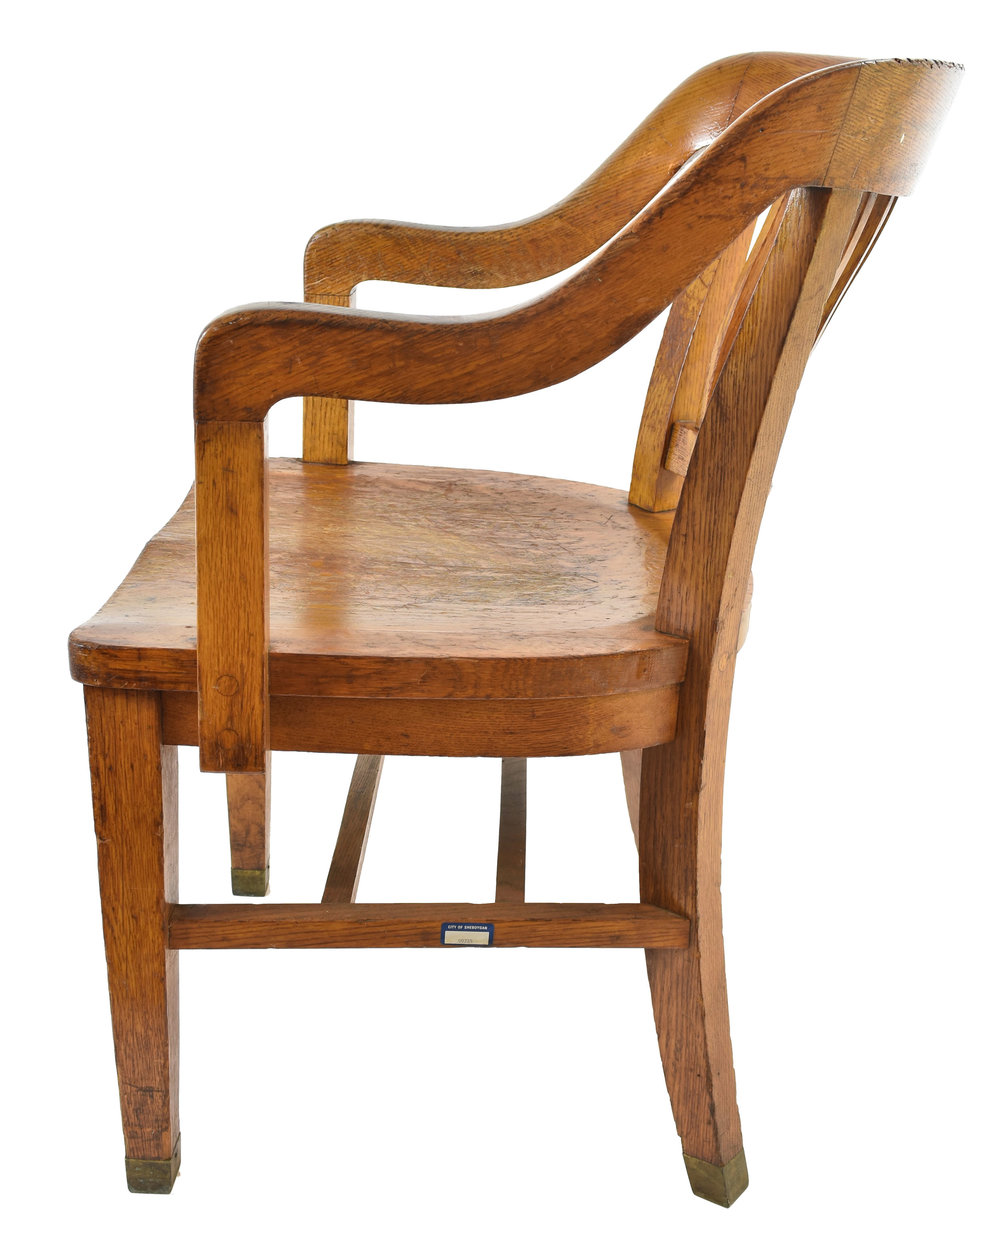 47978 courtroom oak chairs 1.jpg